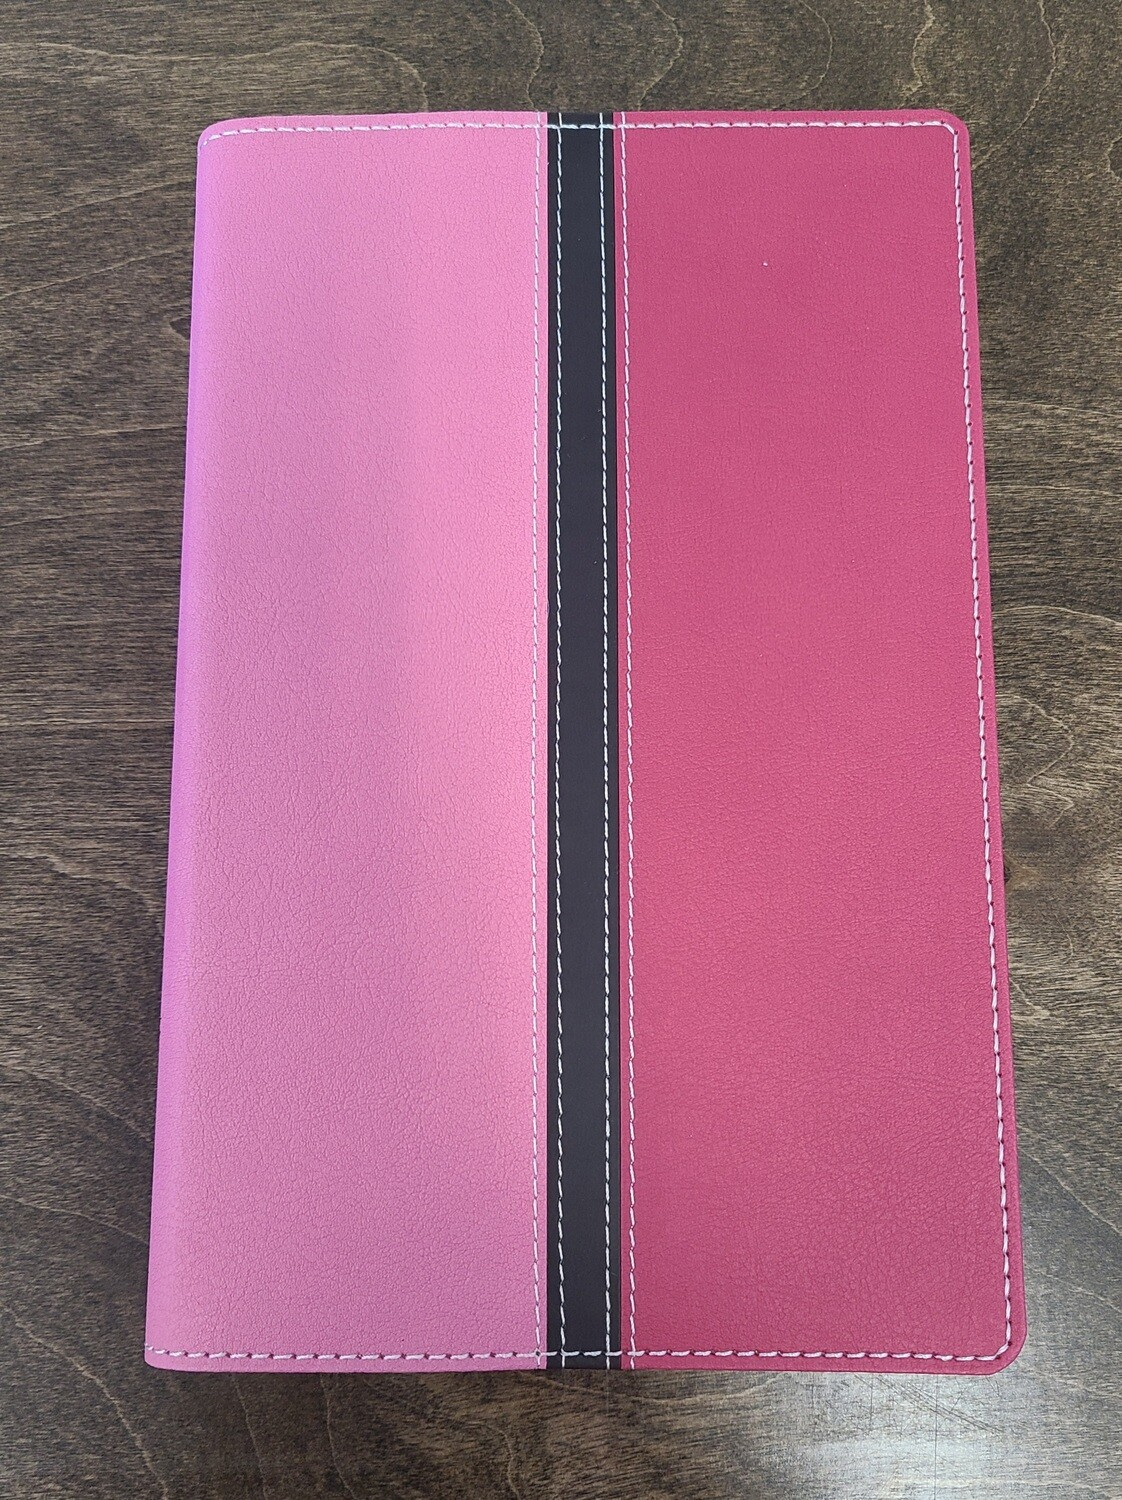 NIV Busy Mom's Bible - Pink/Hot Pink Duo-Tone LeatherSoft Touch